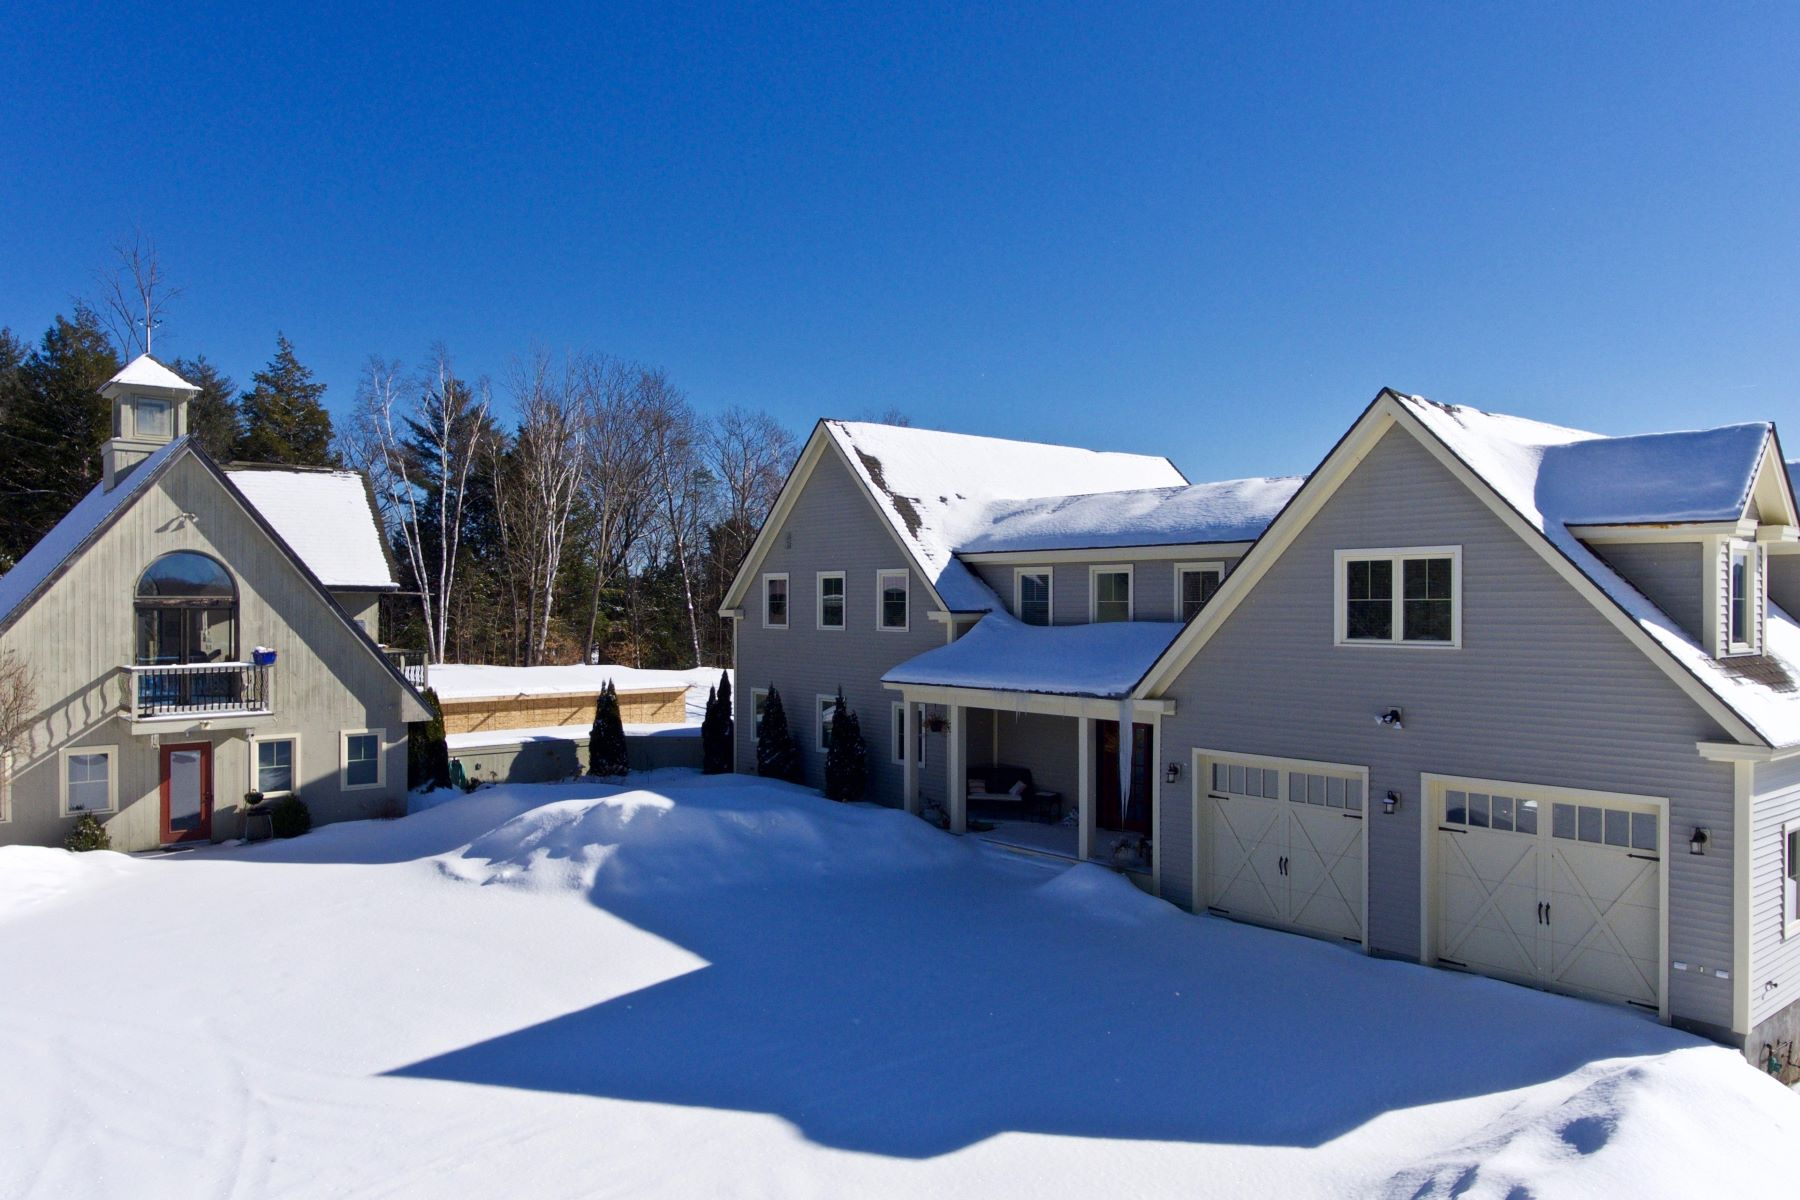 Single Family Home for Sale at 38 Tinkham Hill Road, Hartland 38 Tinkham Hill Rd Hartland, Vermont 05048 United States